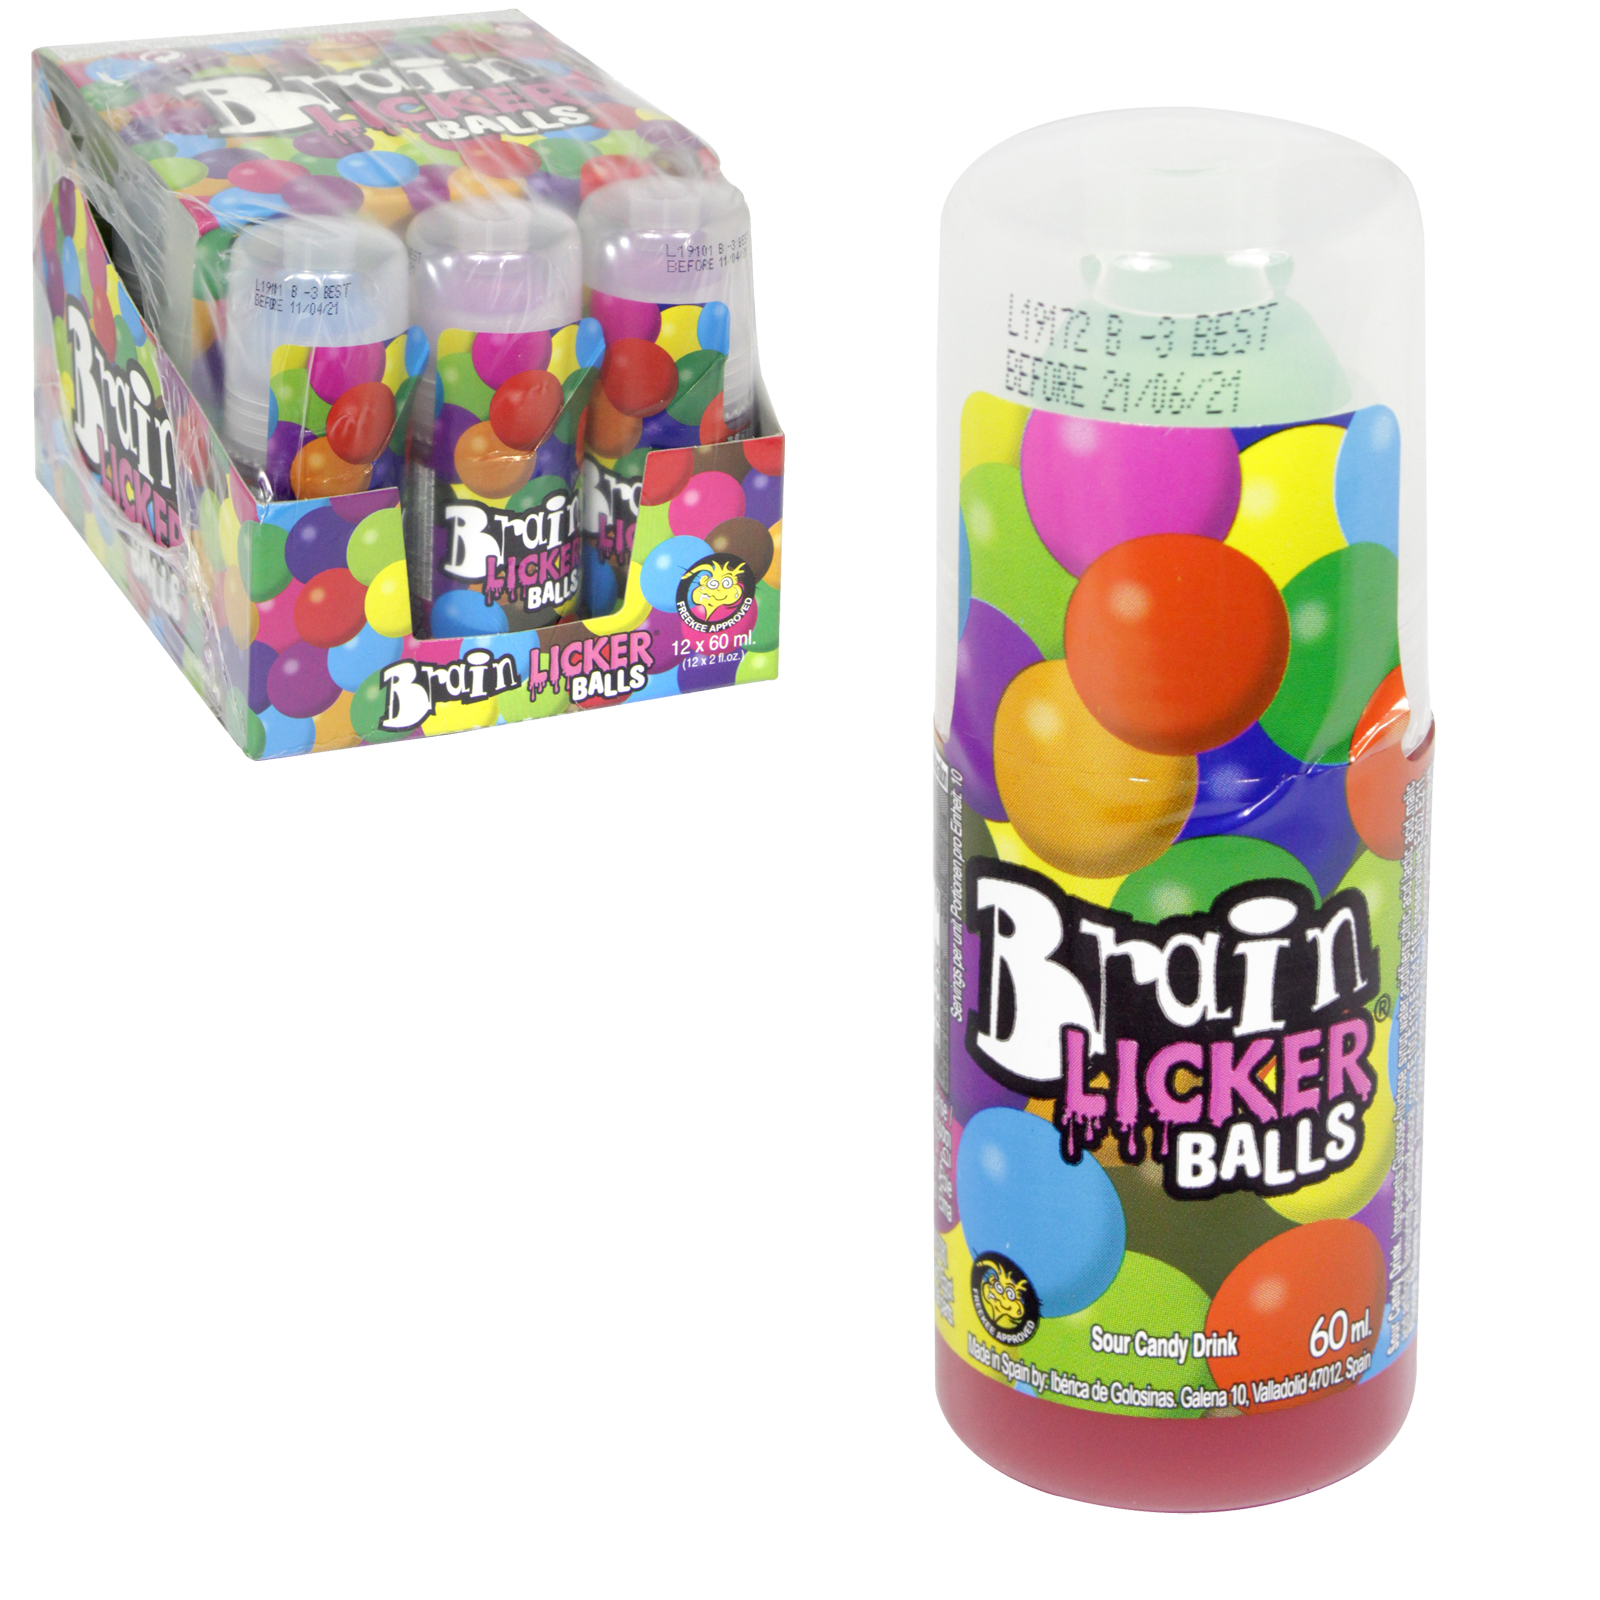 BRAIN LICKER BALLS SOUR CANDY DRINK 60ML X 12